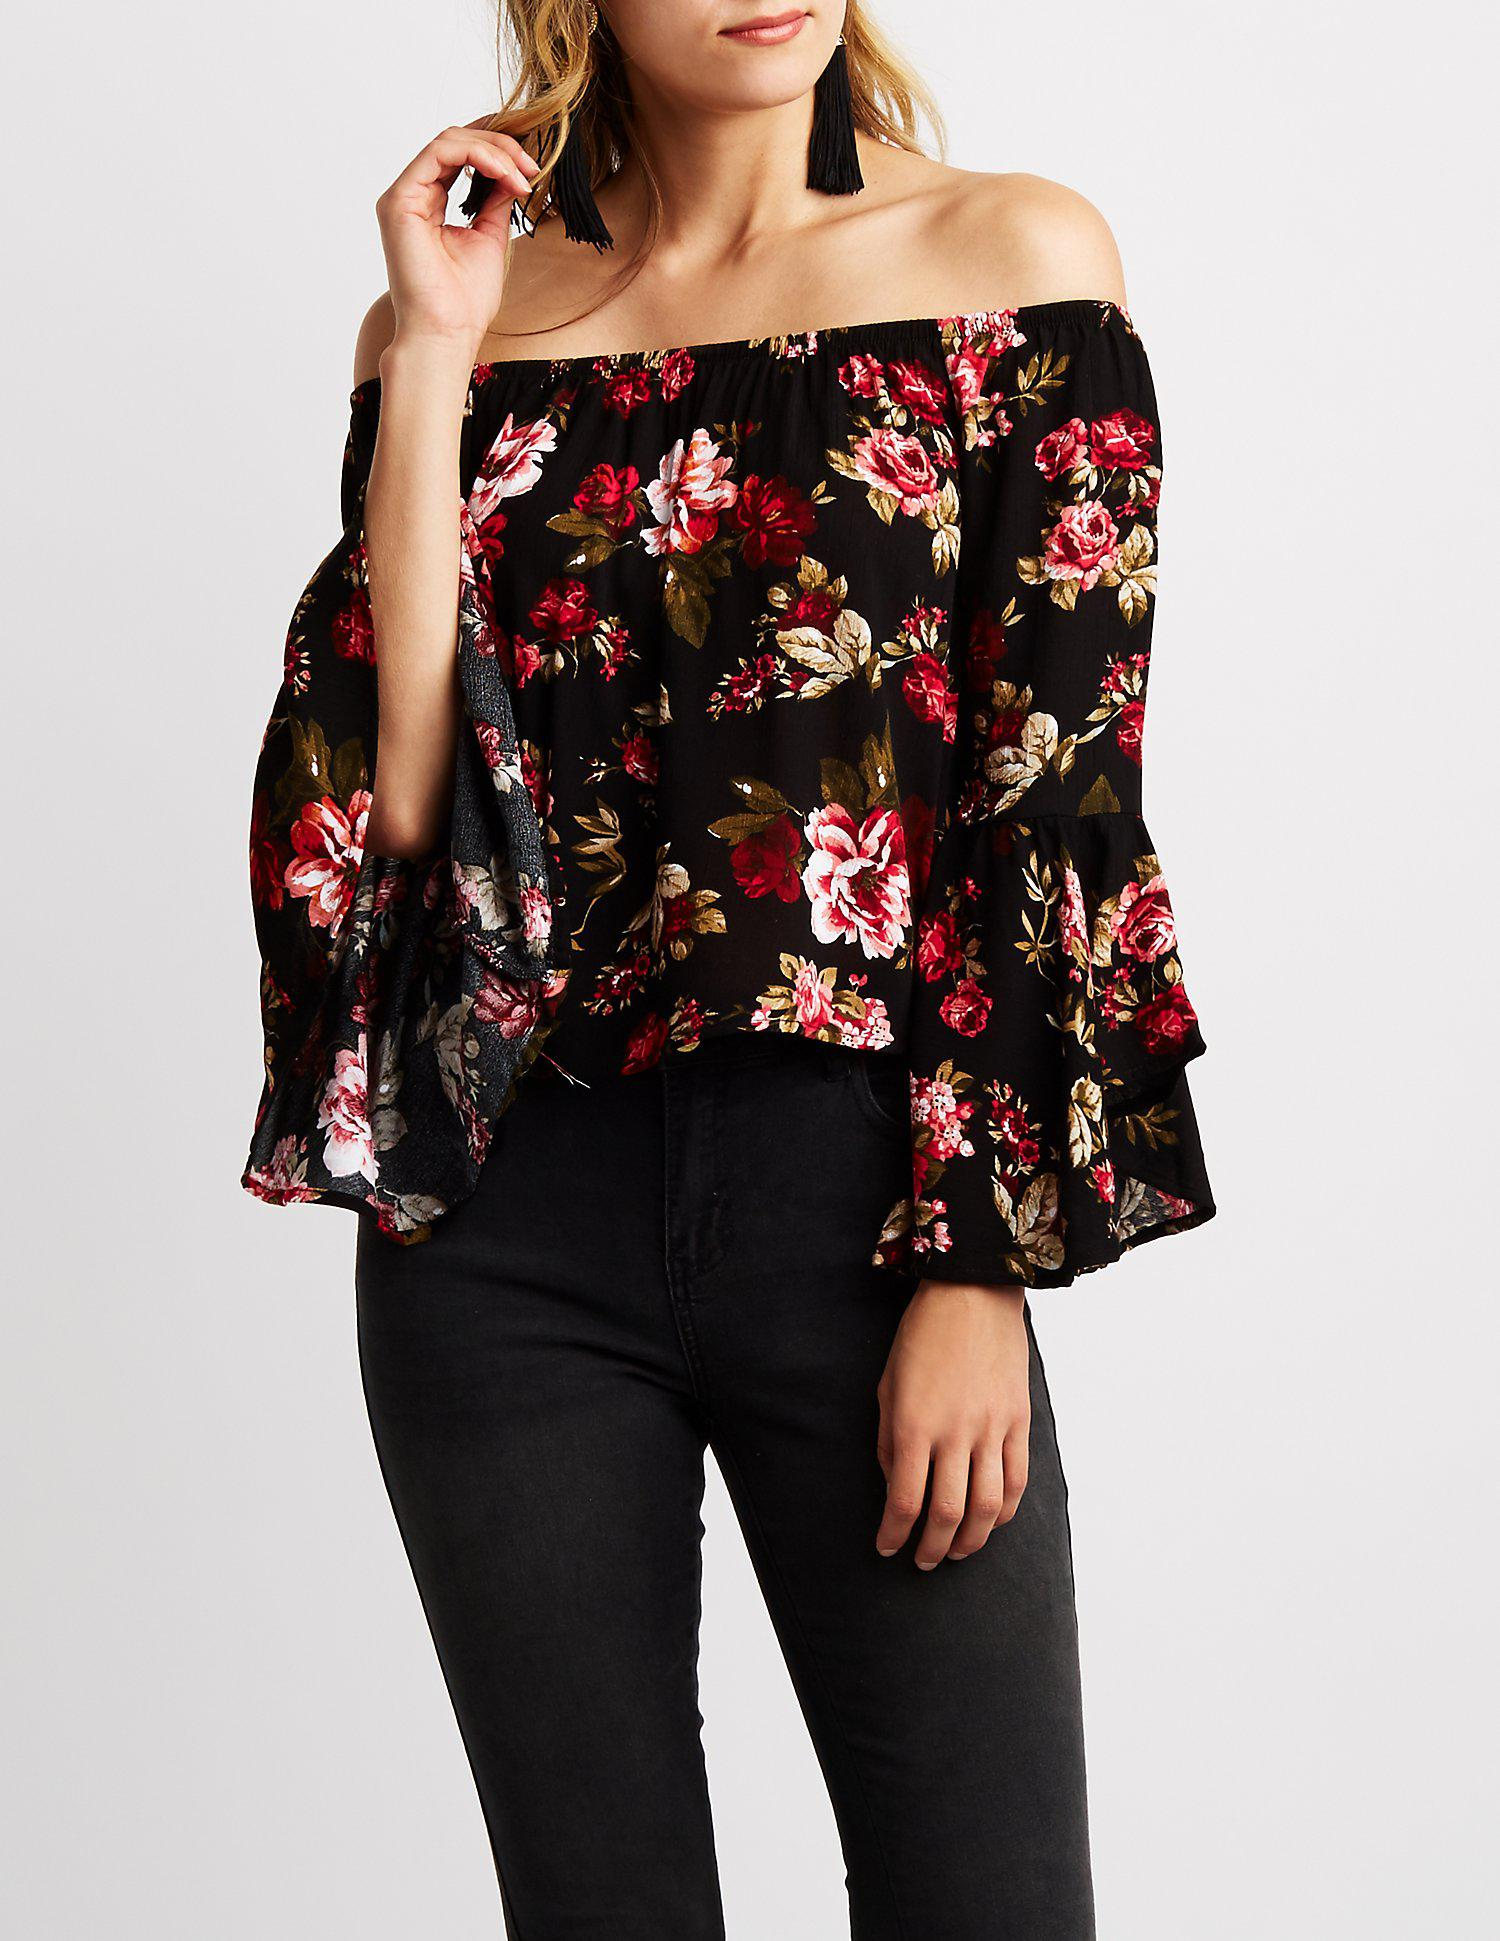 3dab2ff5c7a Lyst - Charlotte Russe Floral Off The Shoulder Top in Black - Save 53%